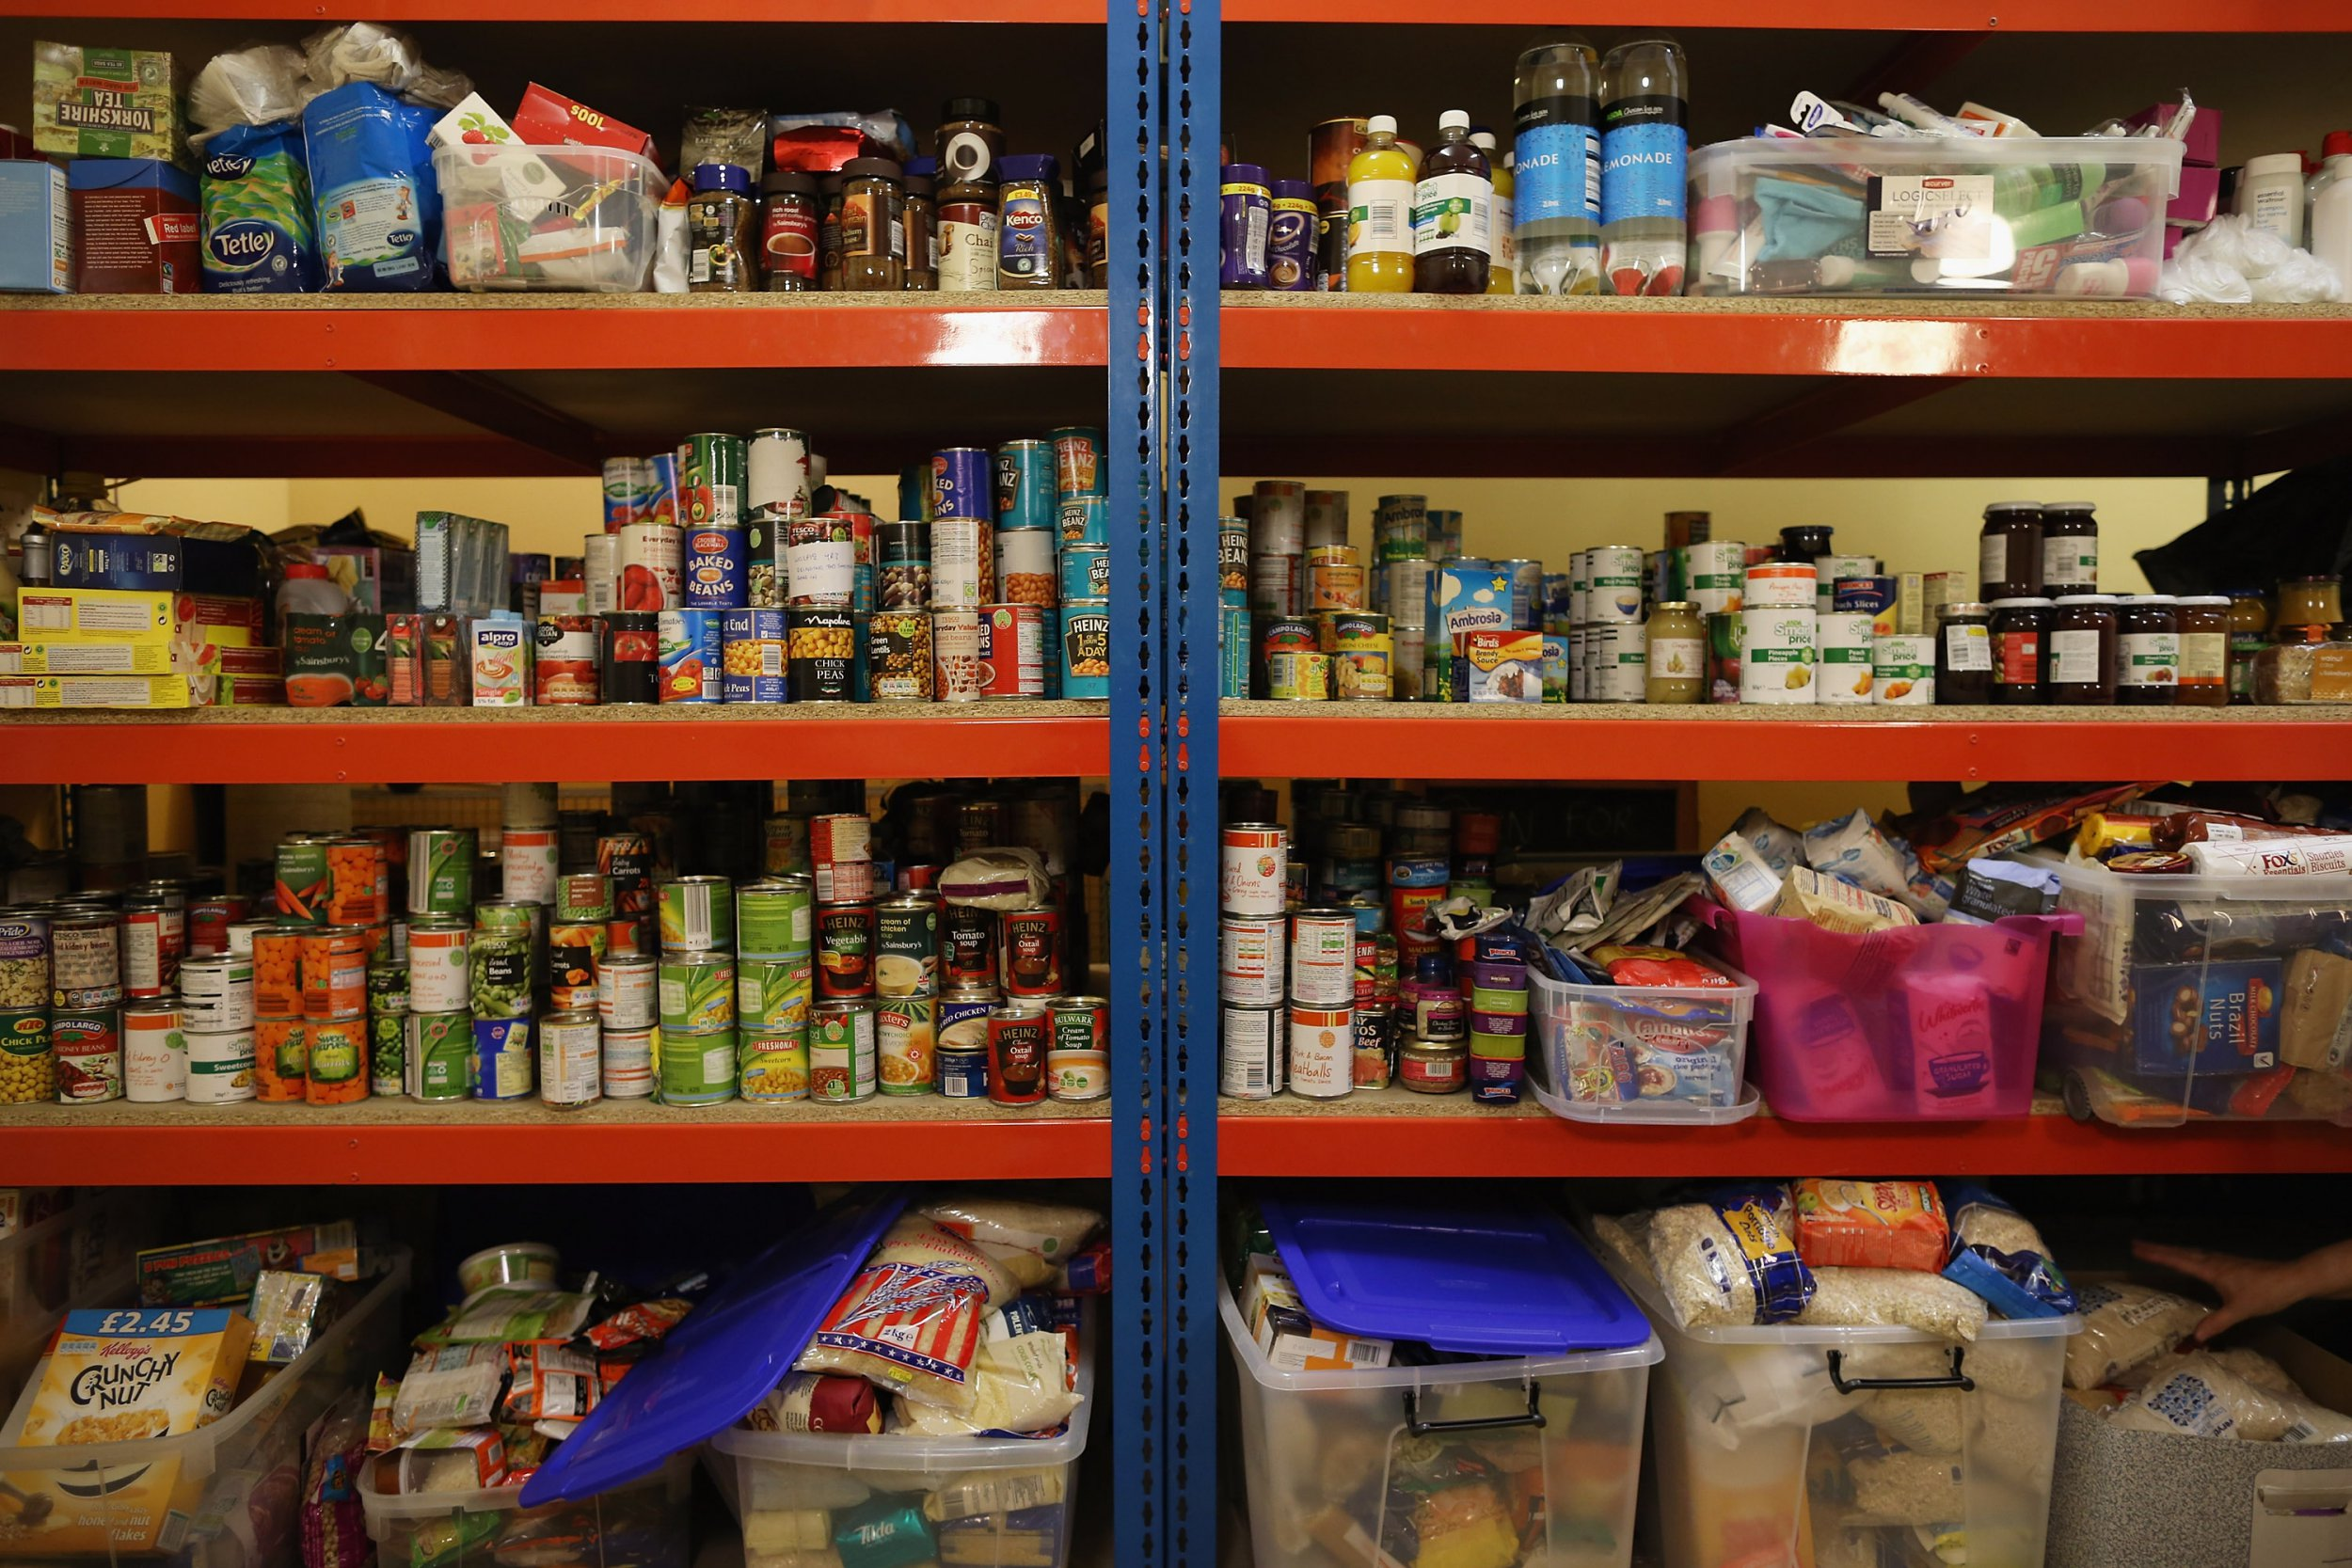 Calls for Minister for Hunger to tackle problem of 1 in 5 children going hungry